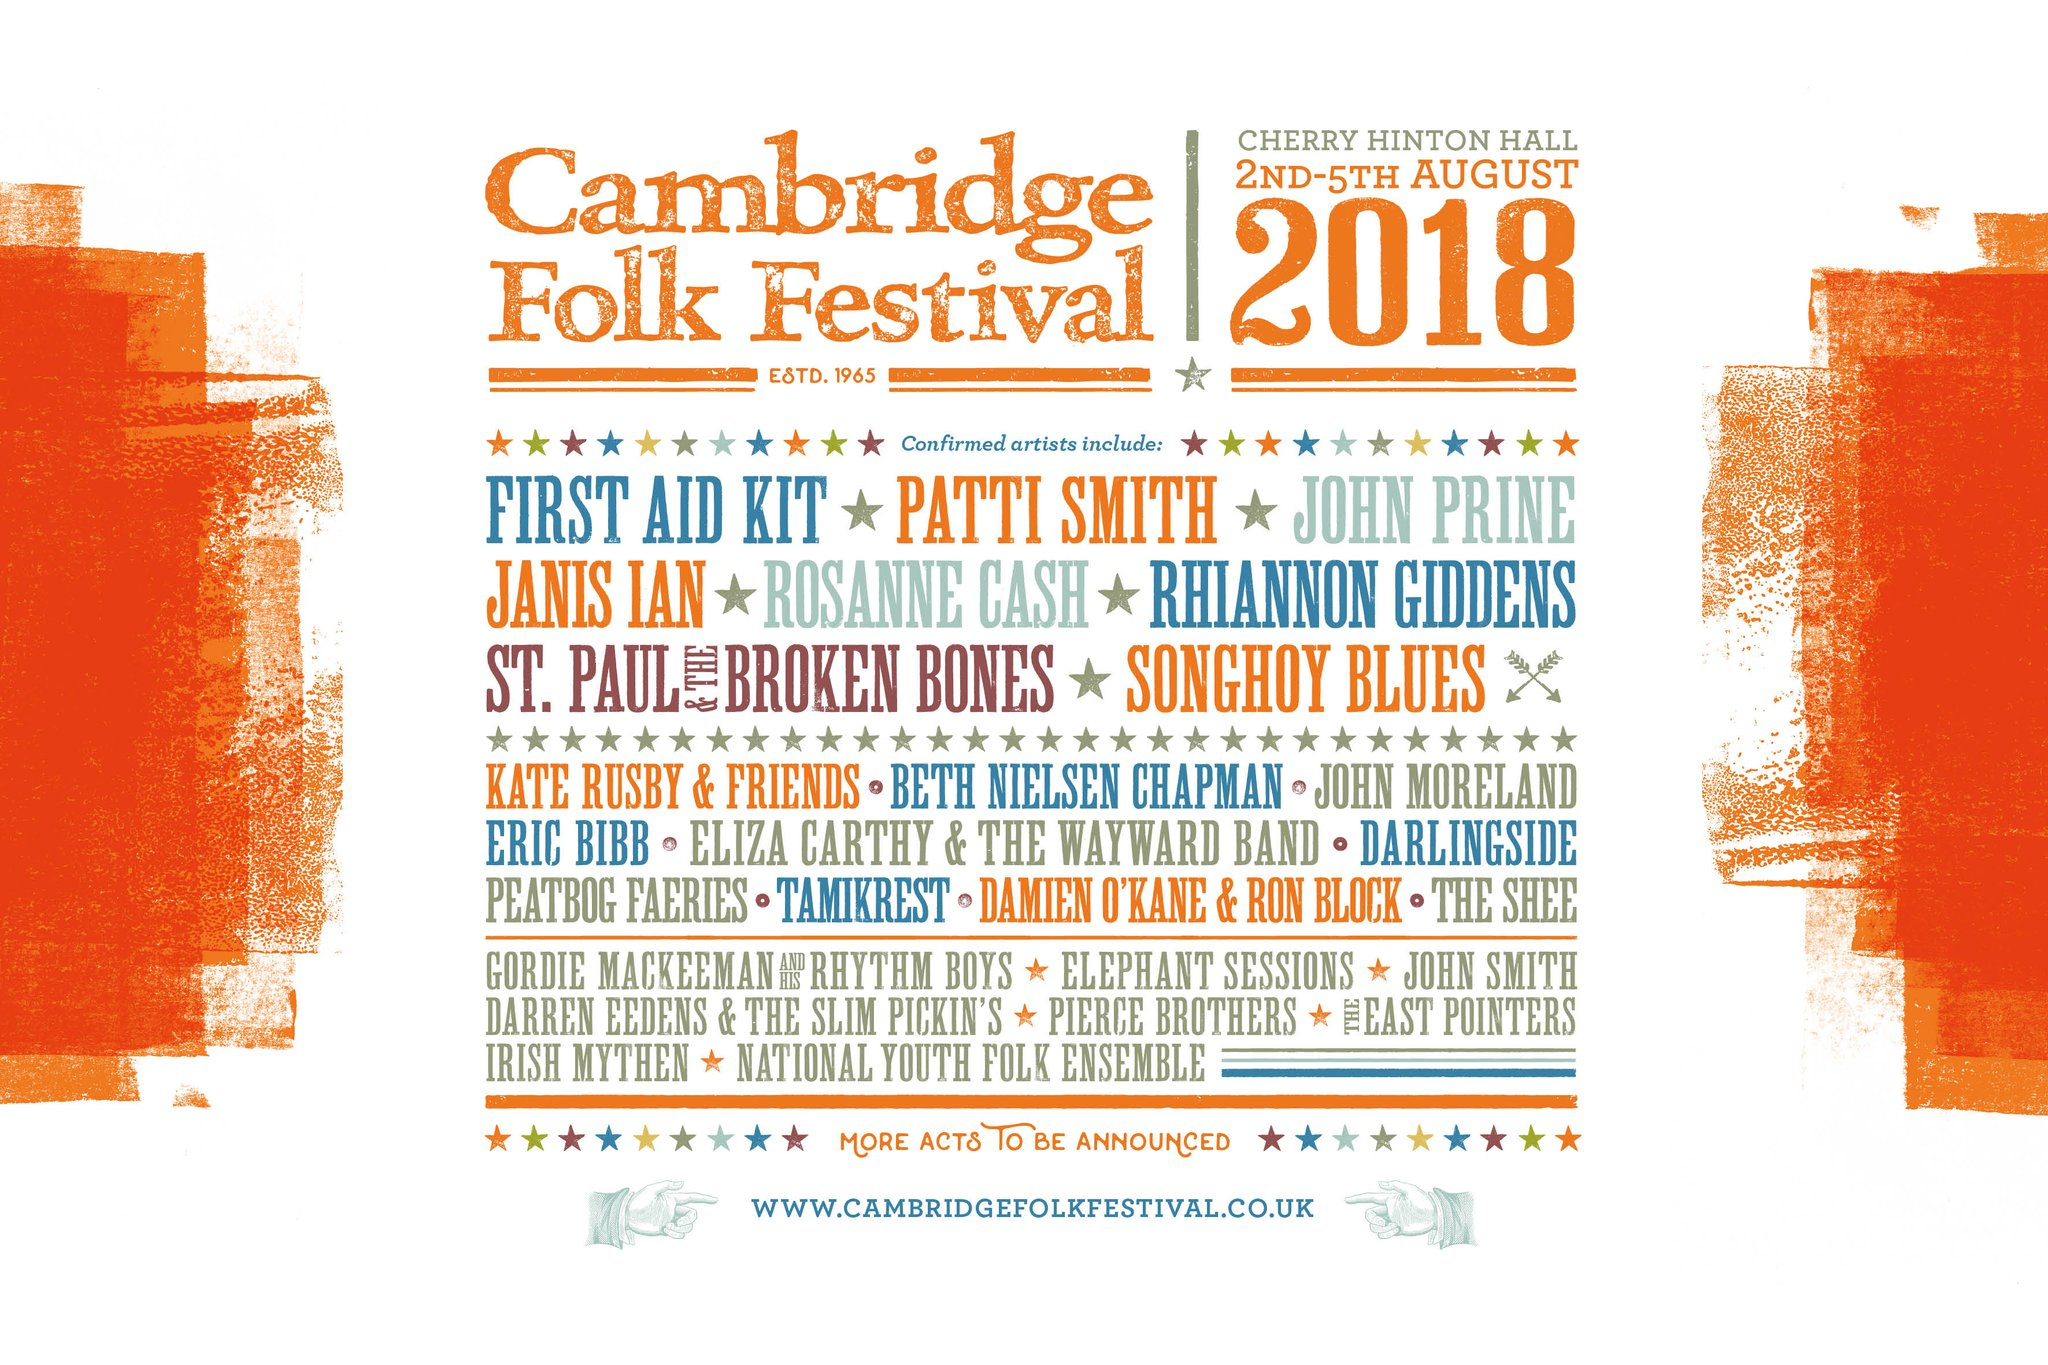 Cambridge Folk Festival 2018 Line-Up poster